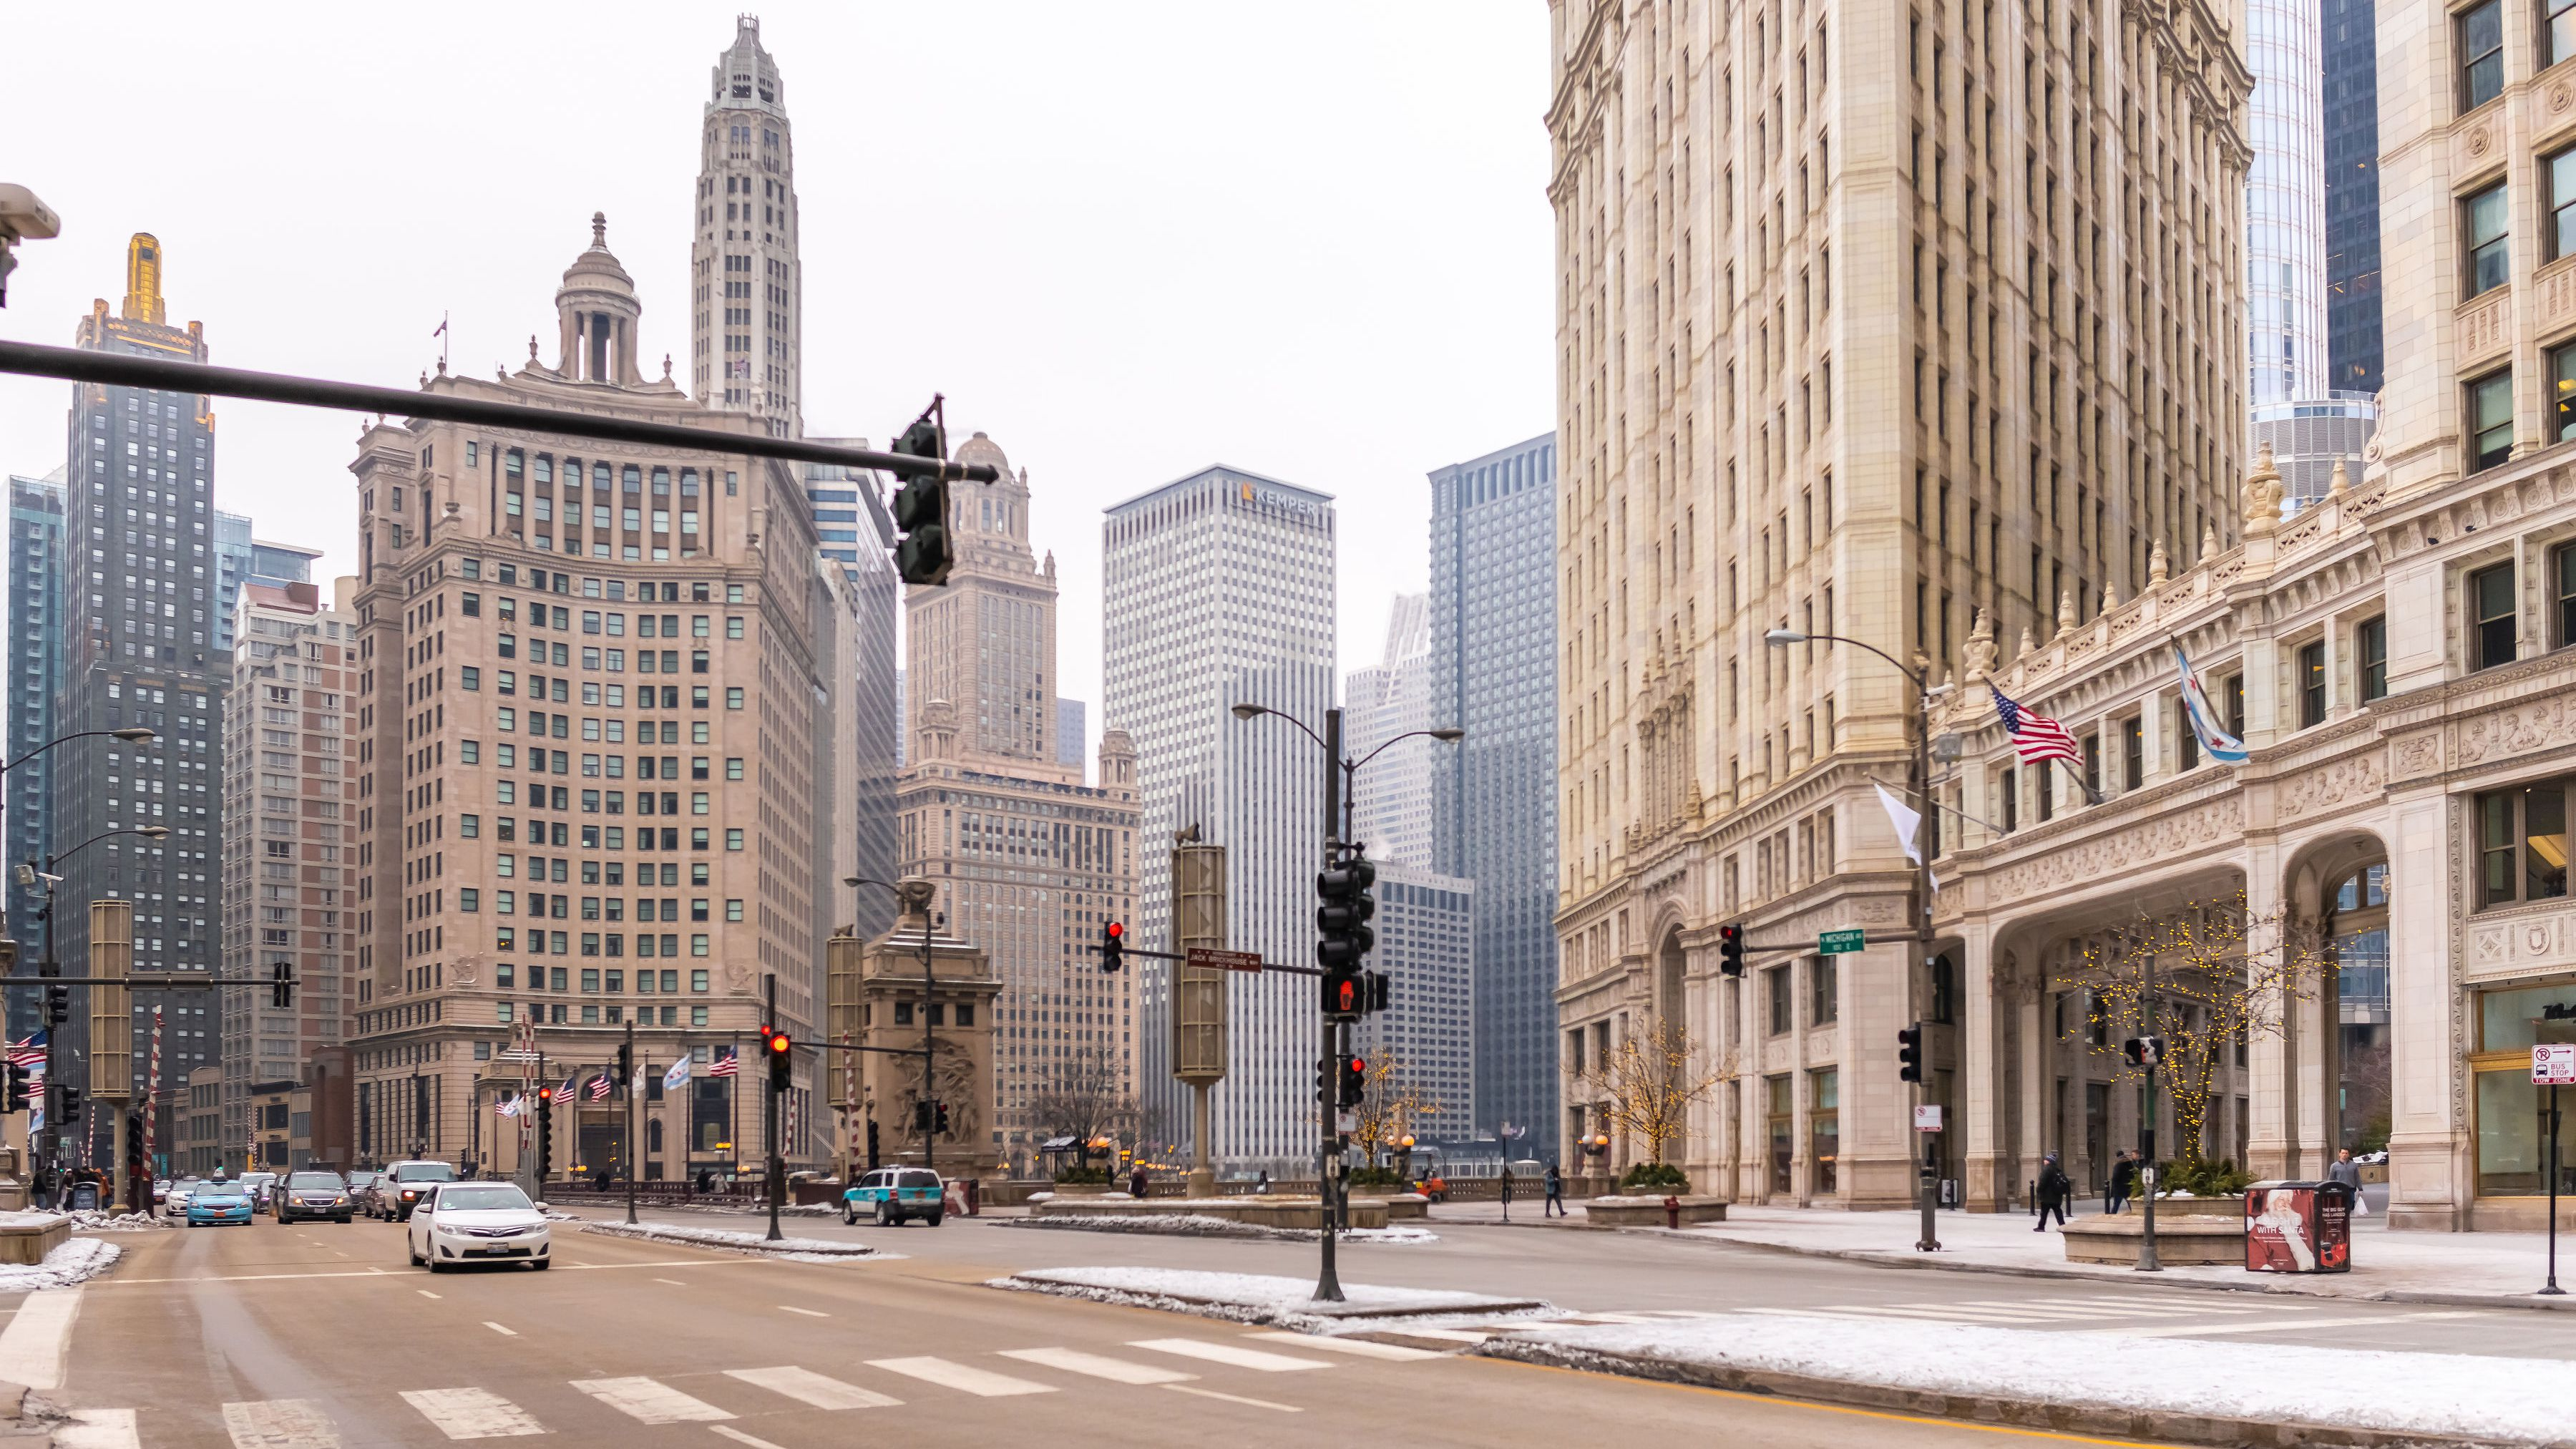 Chicago's Magnificent Mile: The Complete Guide